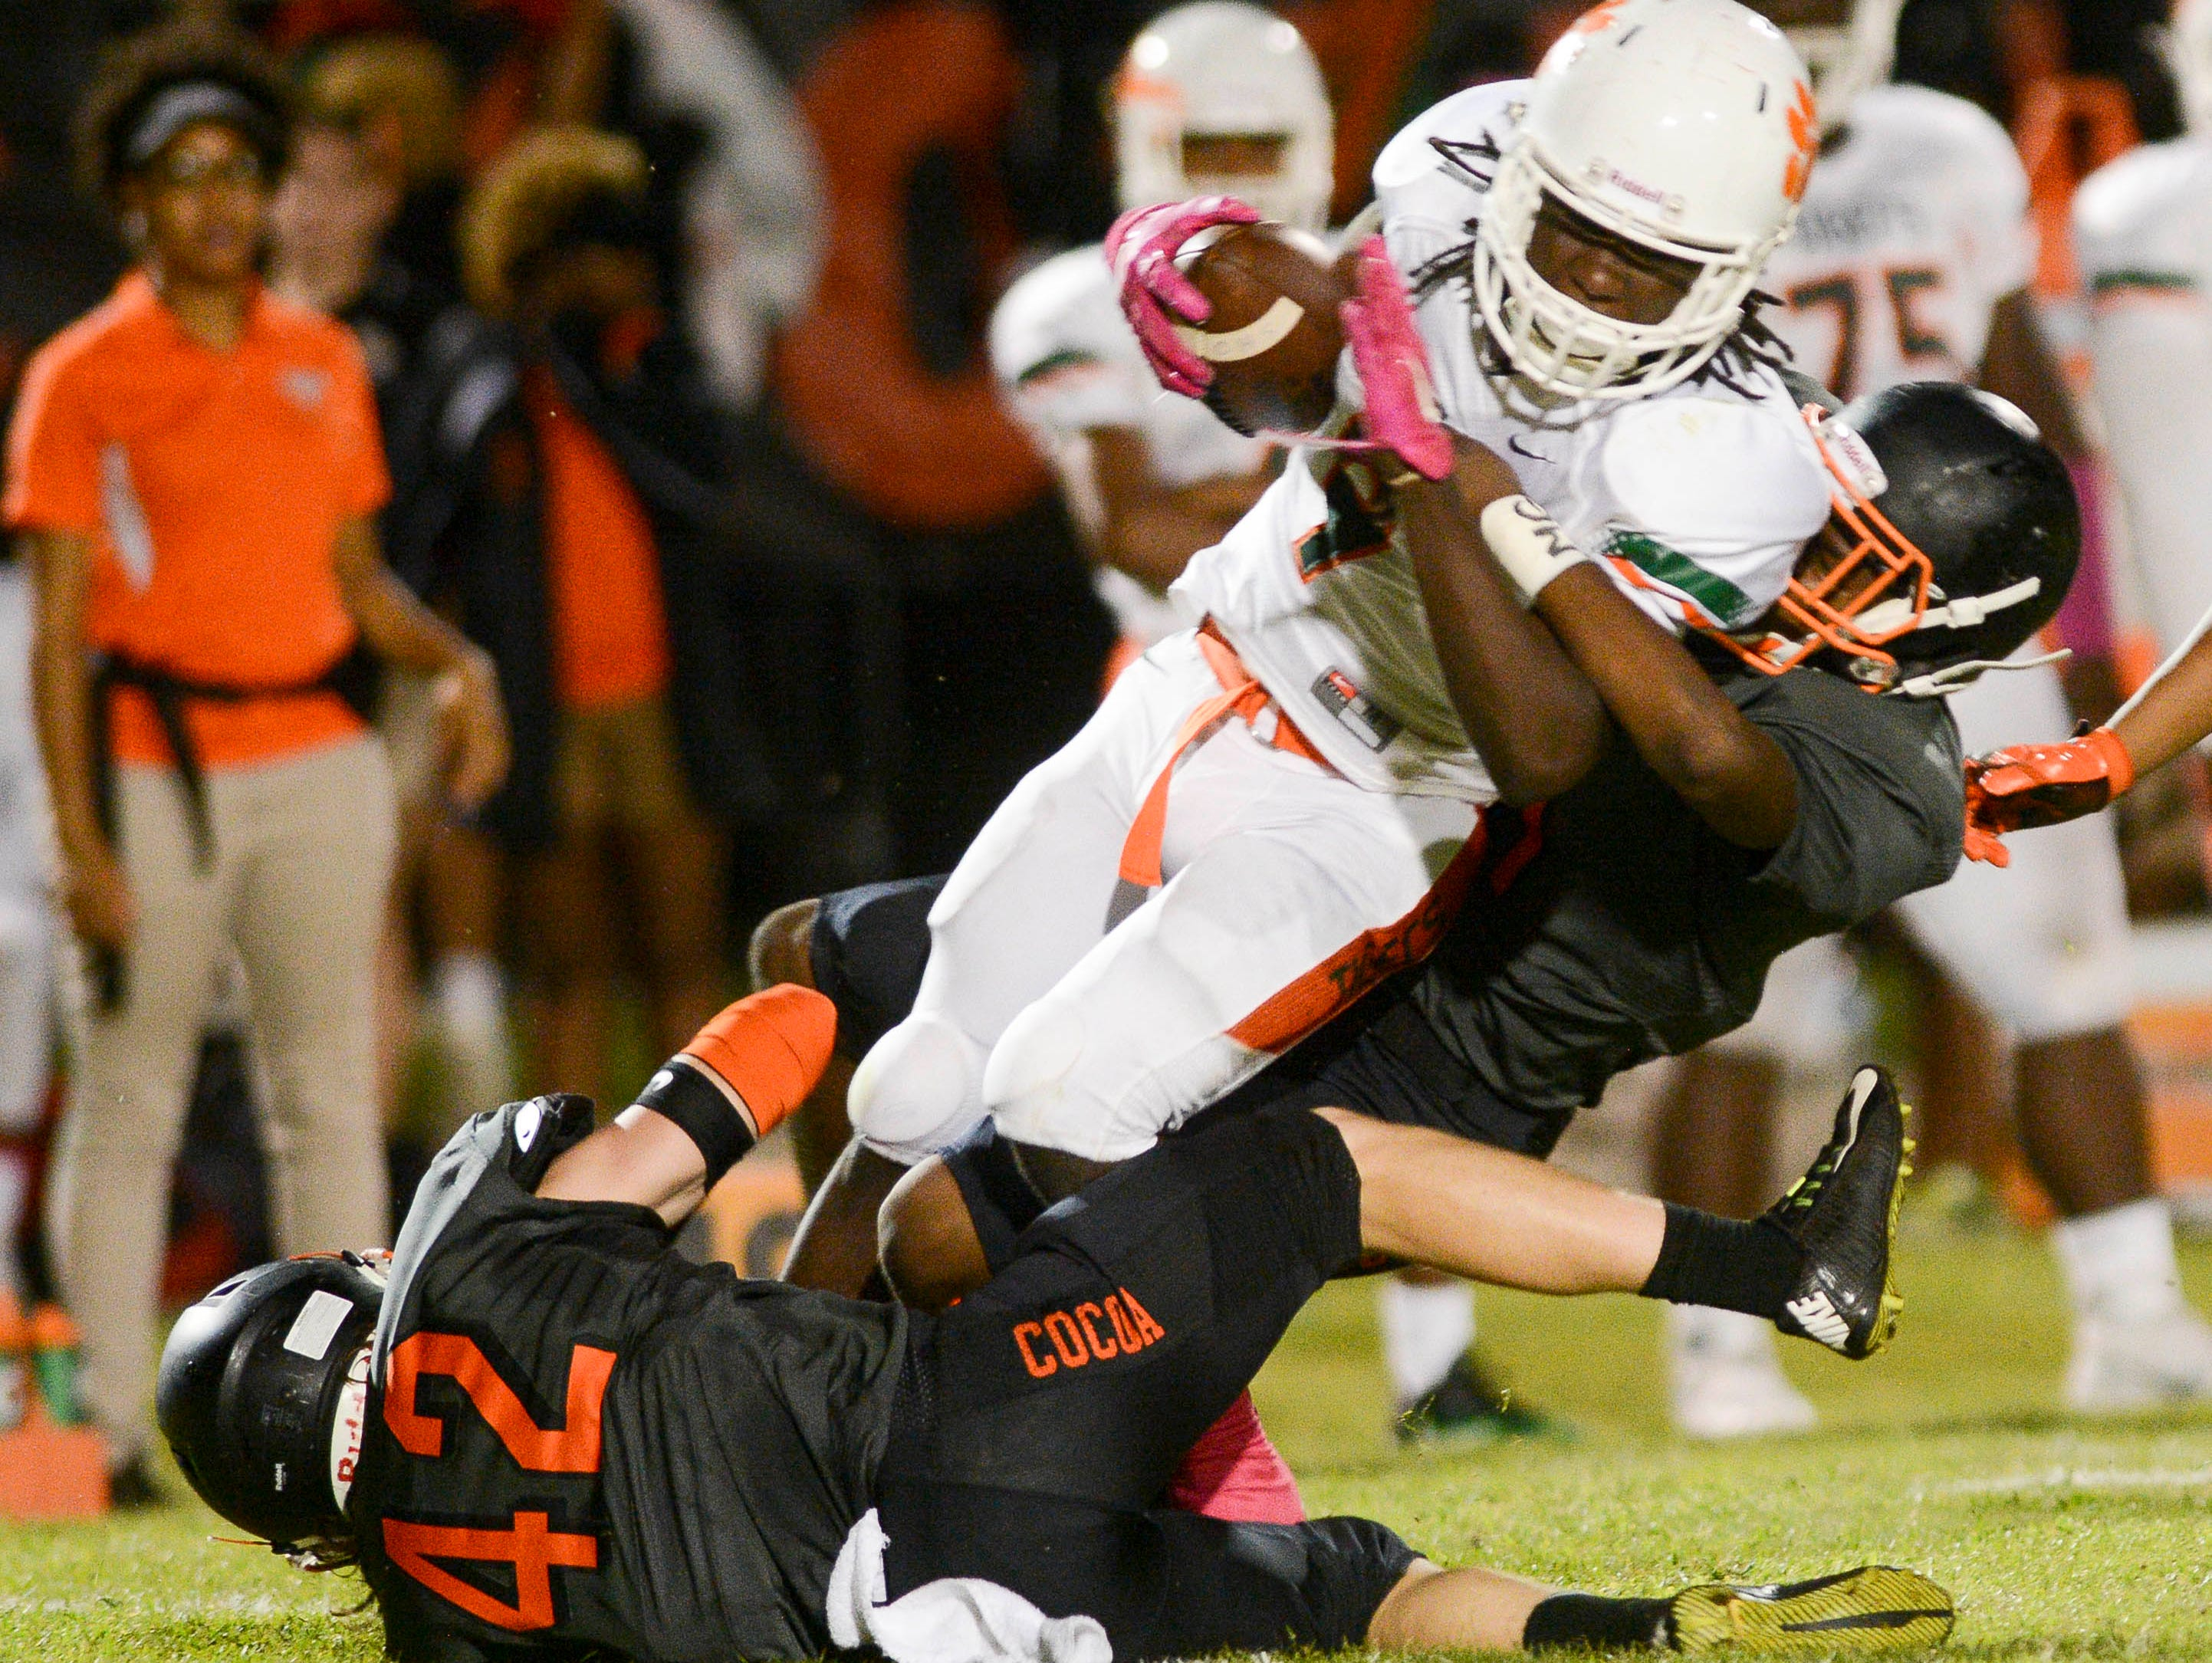 Jones QB Tyrese Jones is taken down for a loss by Daquan Evans of Cocoa during Friday's game.